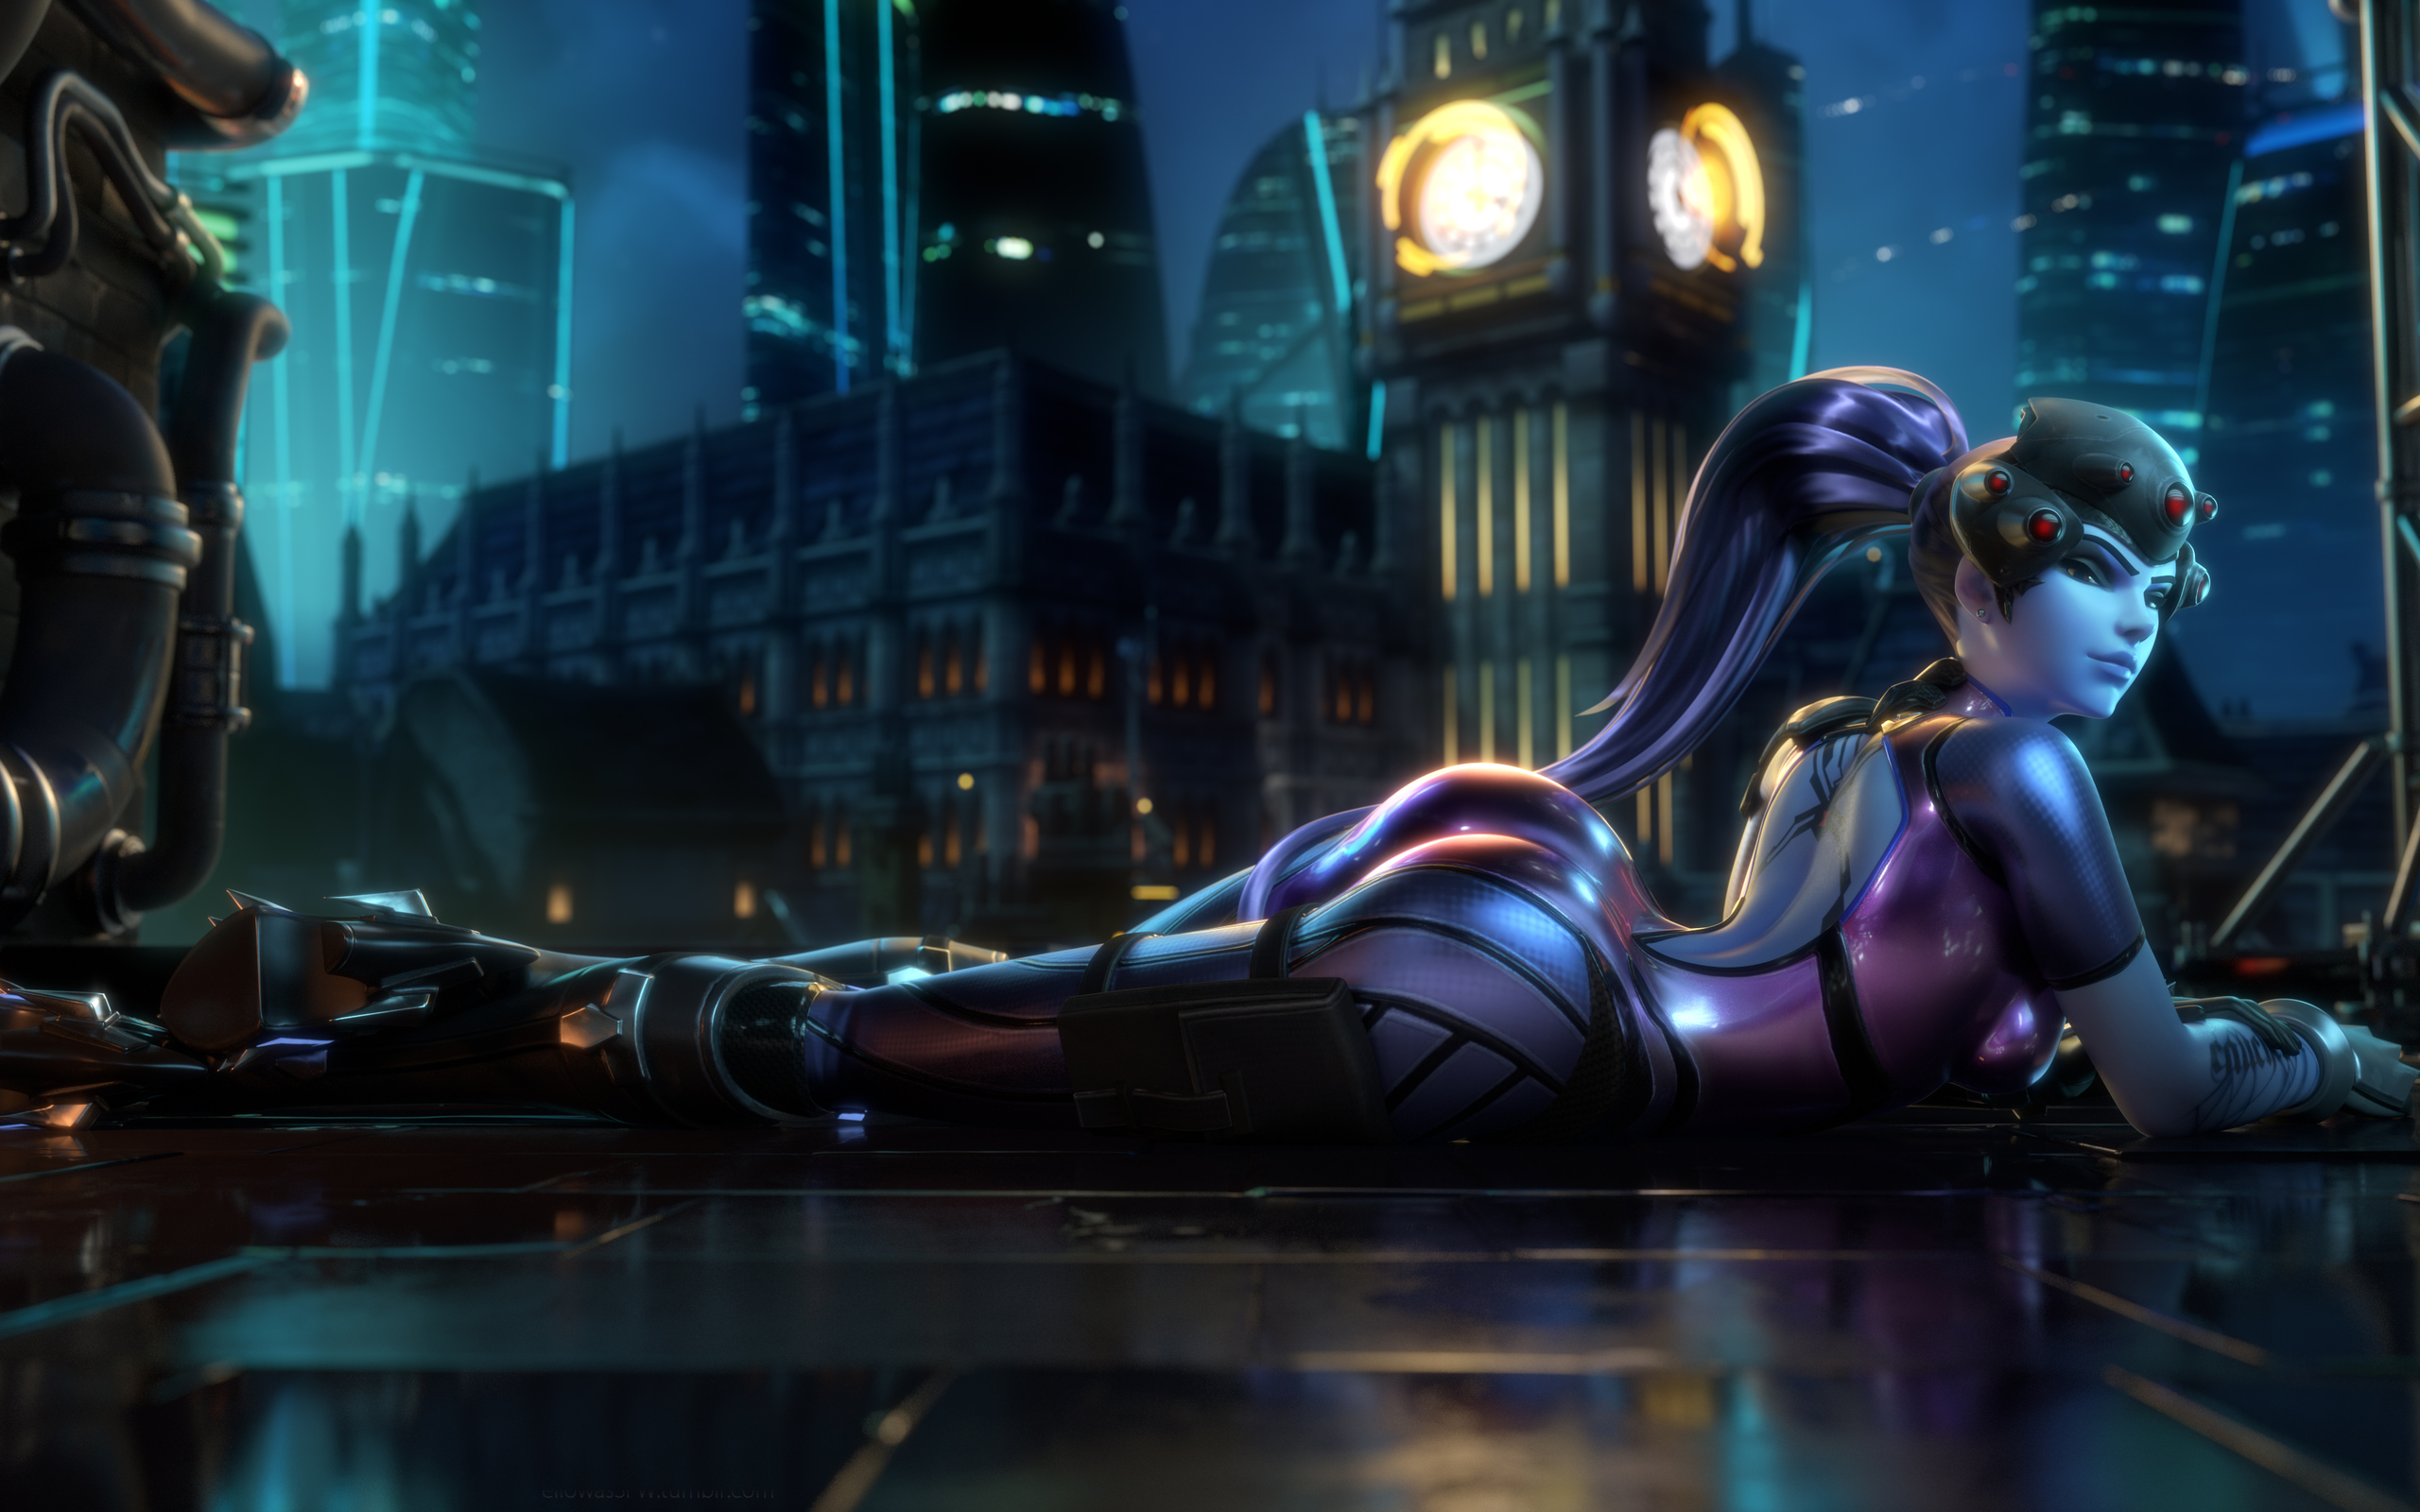 widowmaker-overwatch-art-ad.jpg